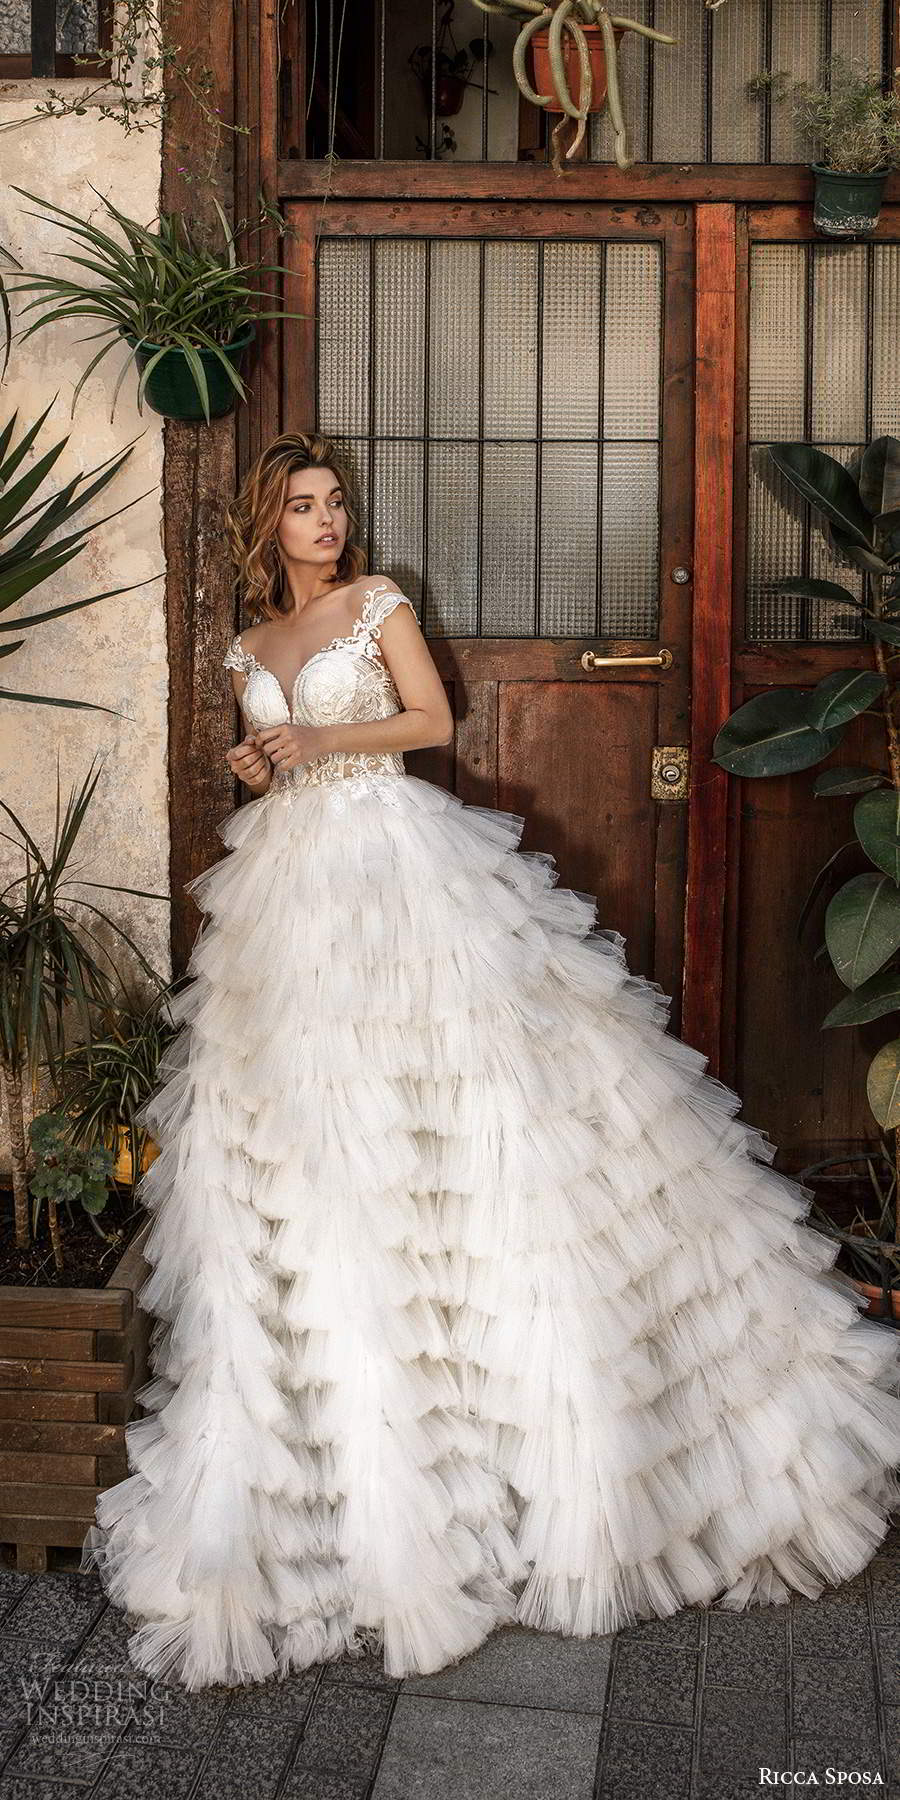 ricca sposa 2020 barcelona bridal illusion cap sleeves sweetheart neckline sheer embellished lace bodice rufffle skirt romantic a line ball gown wedding dress sheer back chapel train (9) mv